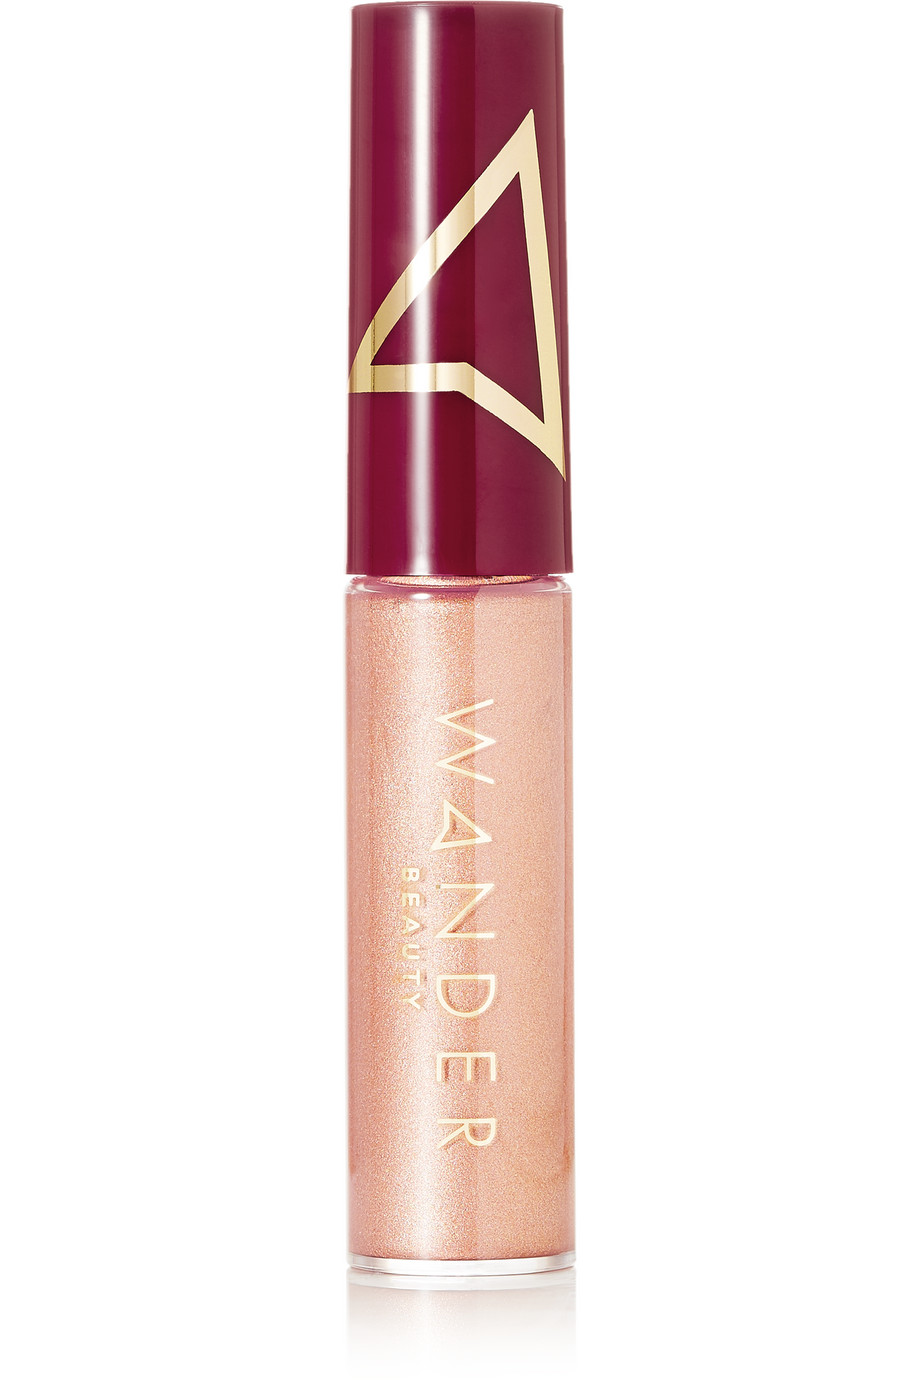 Exquisite Eye Liquid Shadow - Champagne